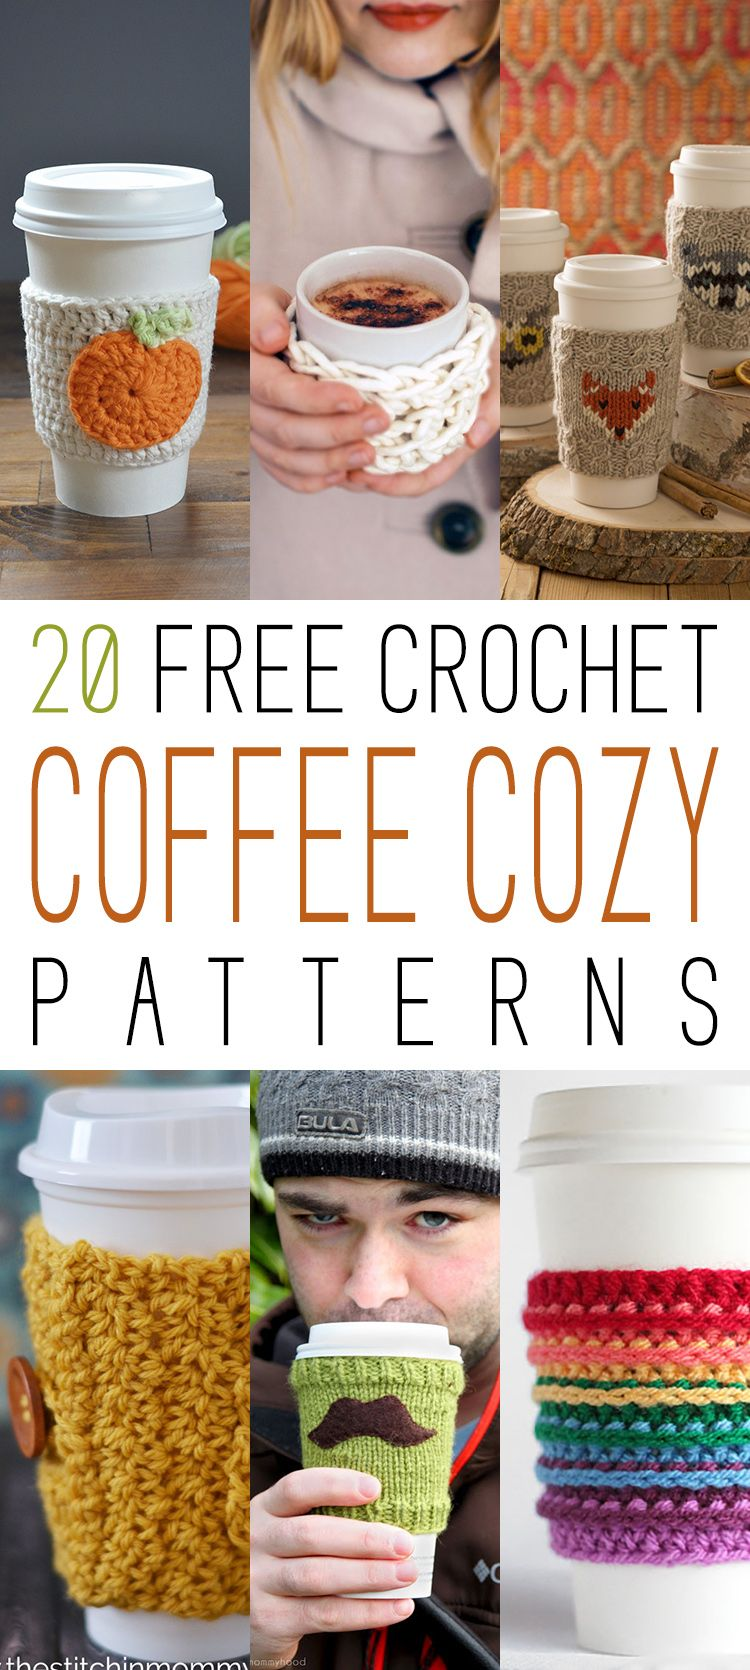 20 Free Crochet Coffee Cozy Patterns – The Cottage Market – Crotch it!